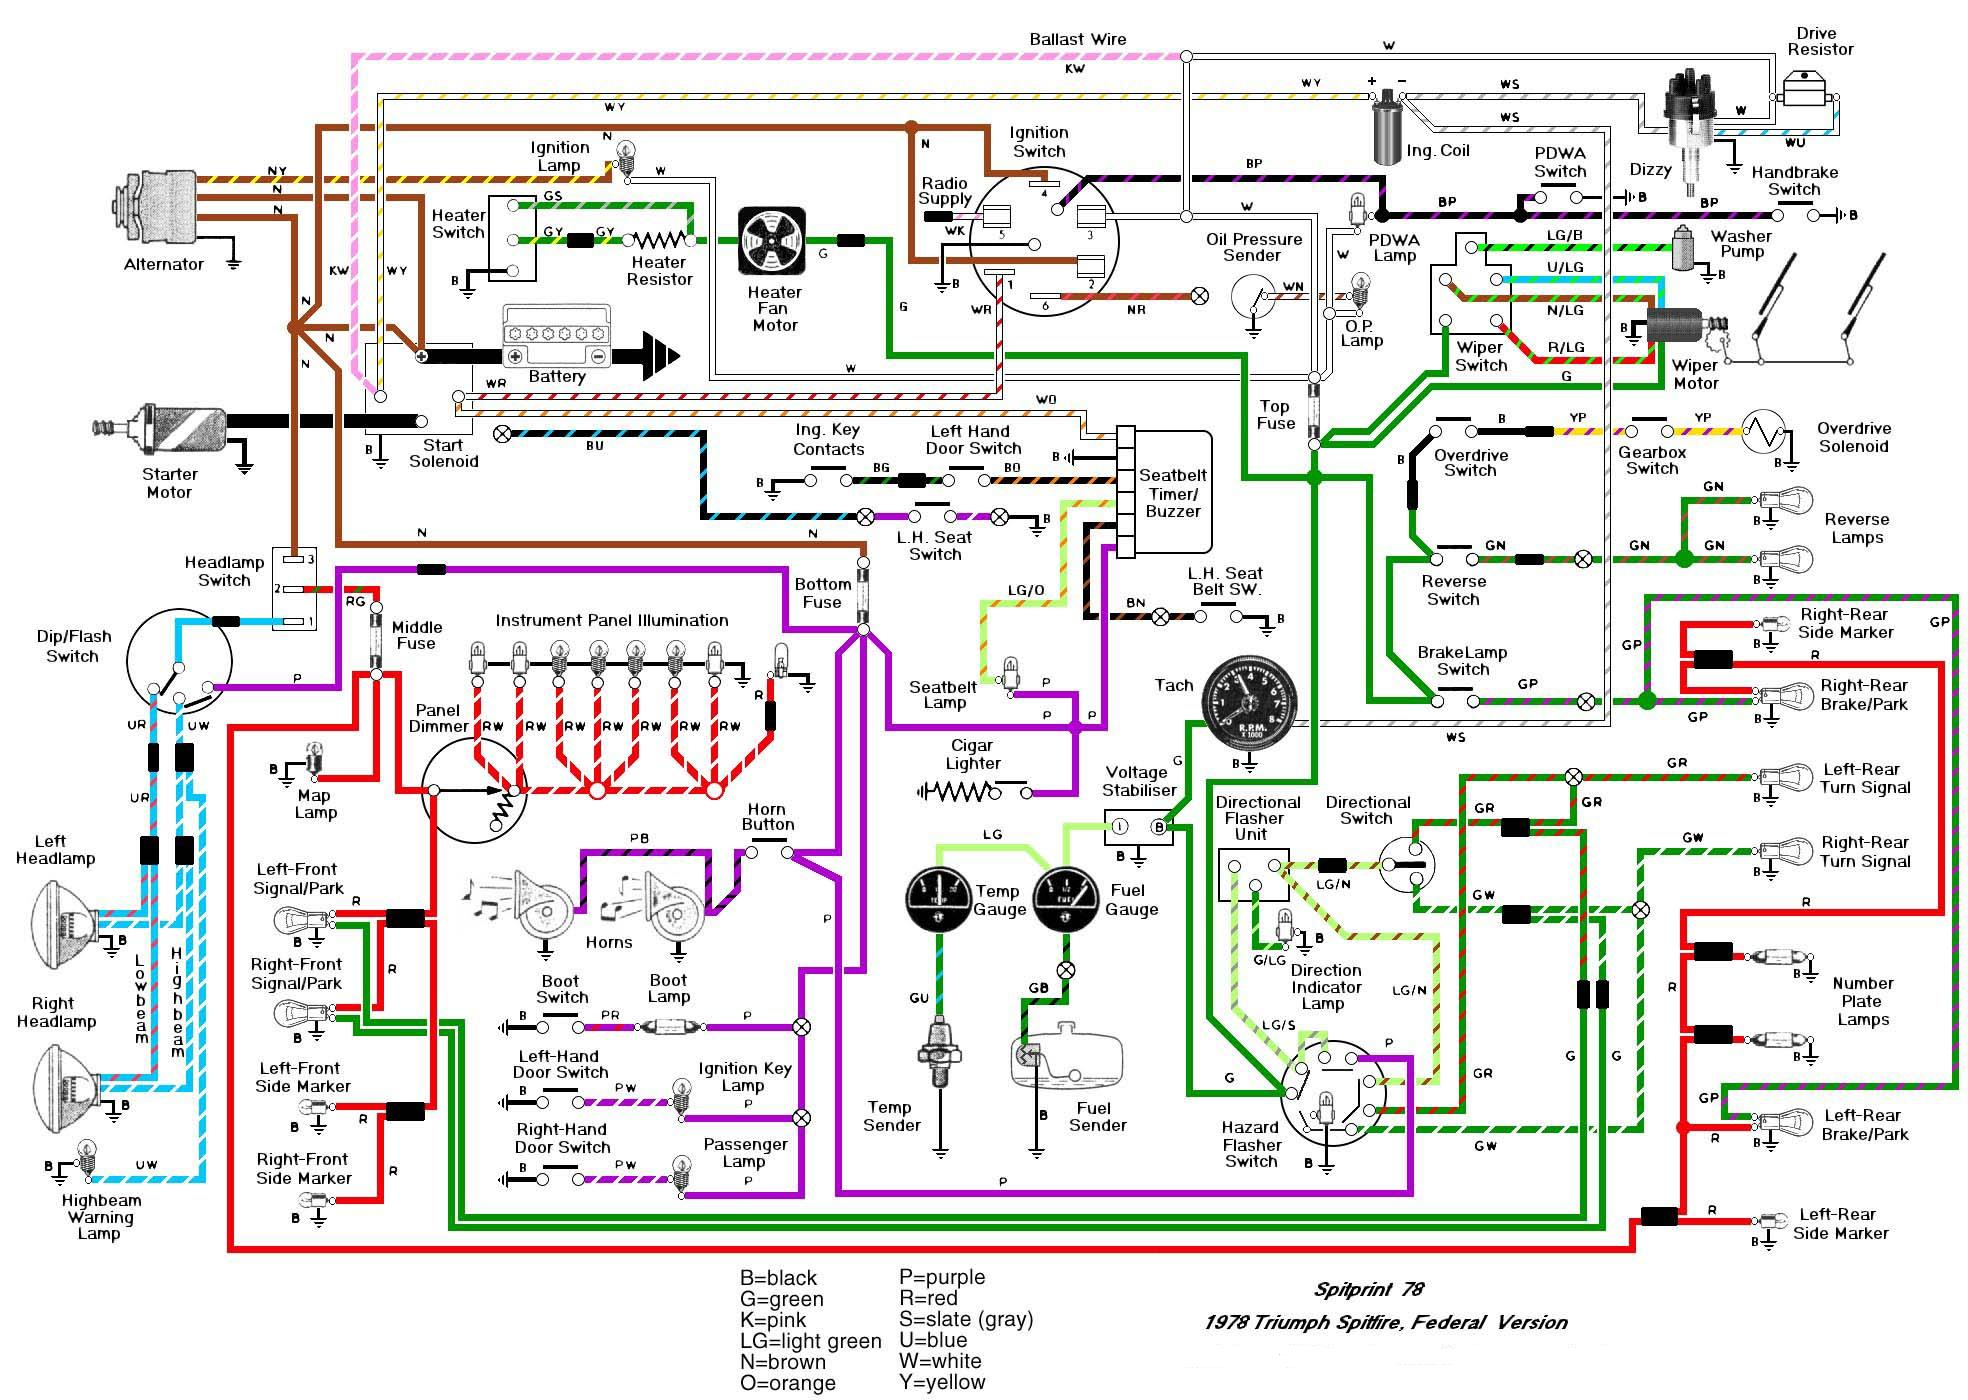 Remarkable How To Read An Electrical Wiring Diagram With Car Diagrams In New Wiring Cloud Dulfrecoveryedborg